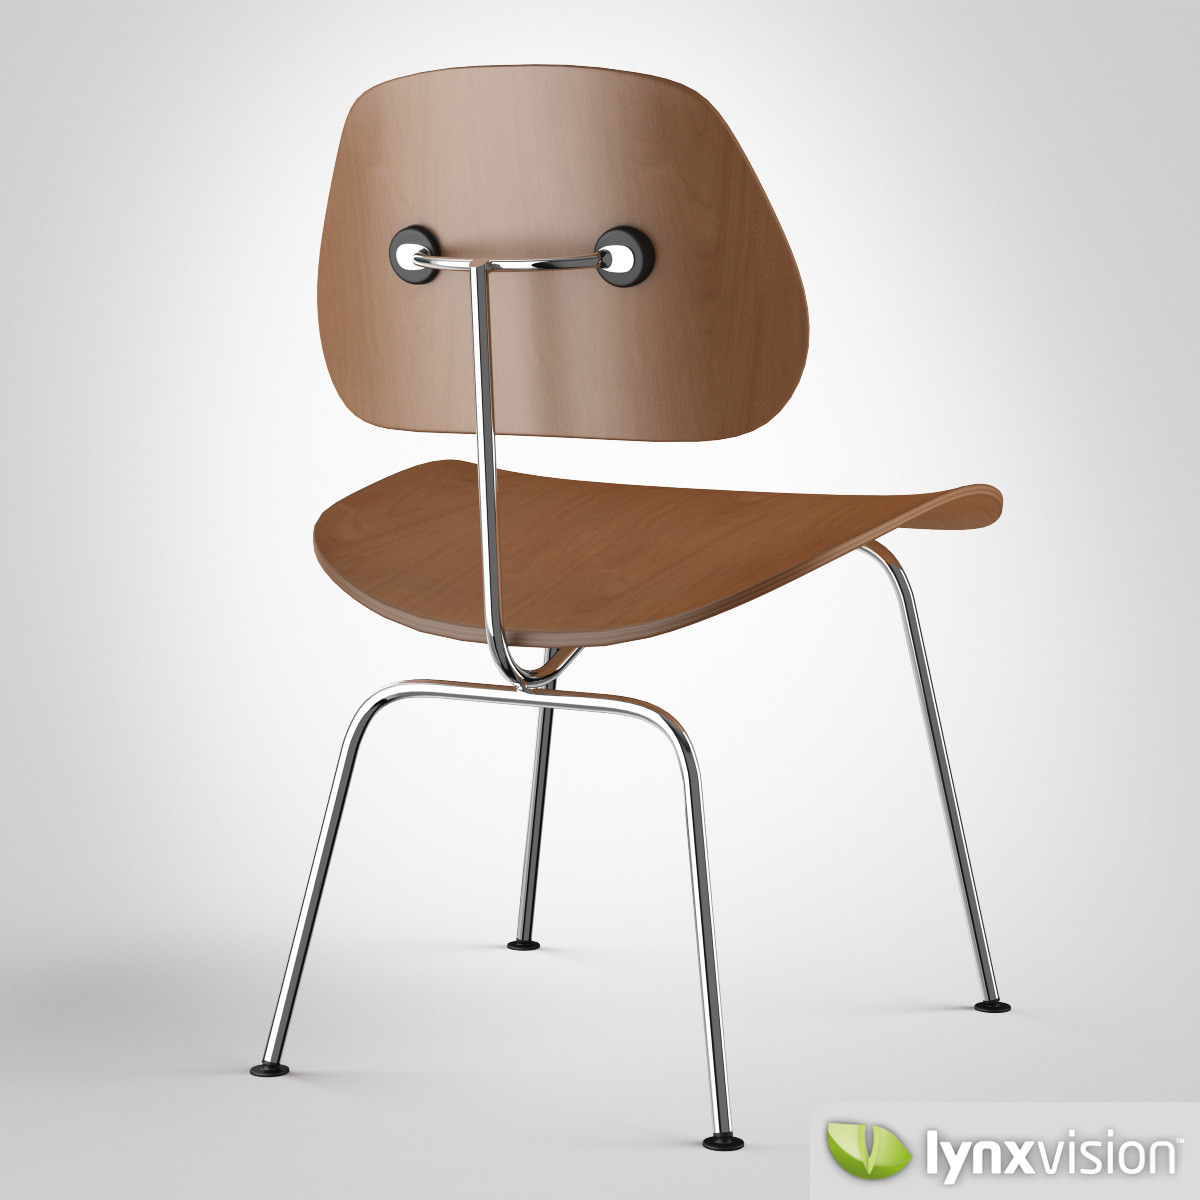 charles and ray eames furniture. Dcm Chair By Charles Ray Eames 3d Model Max Obj Fbx Mtl 3 And Furniture